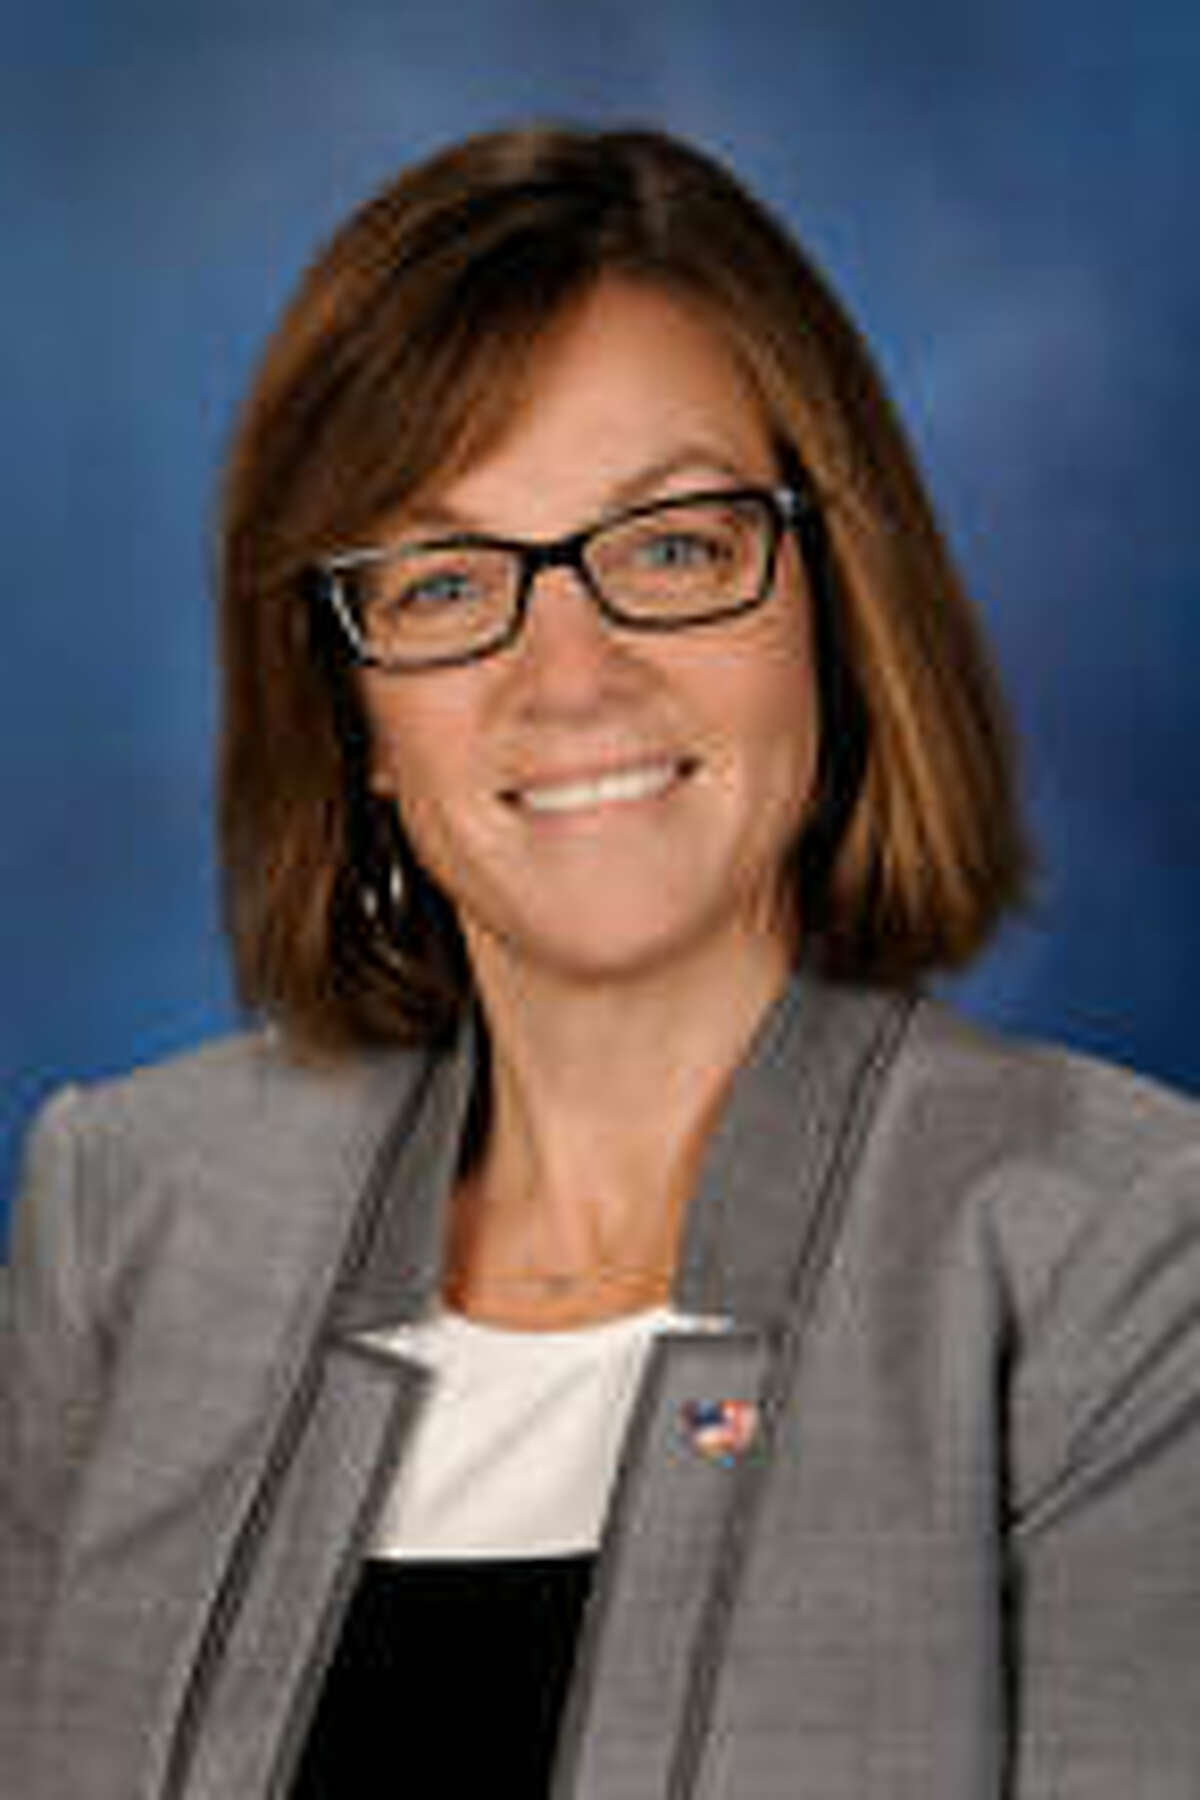 State Rep. Katie Stuart, D-Edwardsville, on Monday said she had no role in changes by the Illinois Senate to her legislation, House Bill 163, that she introduced in December. Stuart's bill initially dealt with opioid tracking; an amendment to her bill last week replaced the language with a 600-page amendment that local law enforcement officials from both parties have said is dangerous.